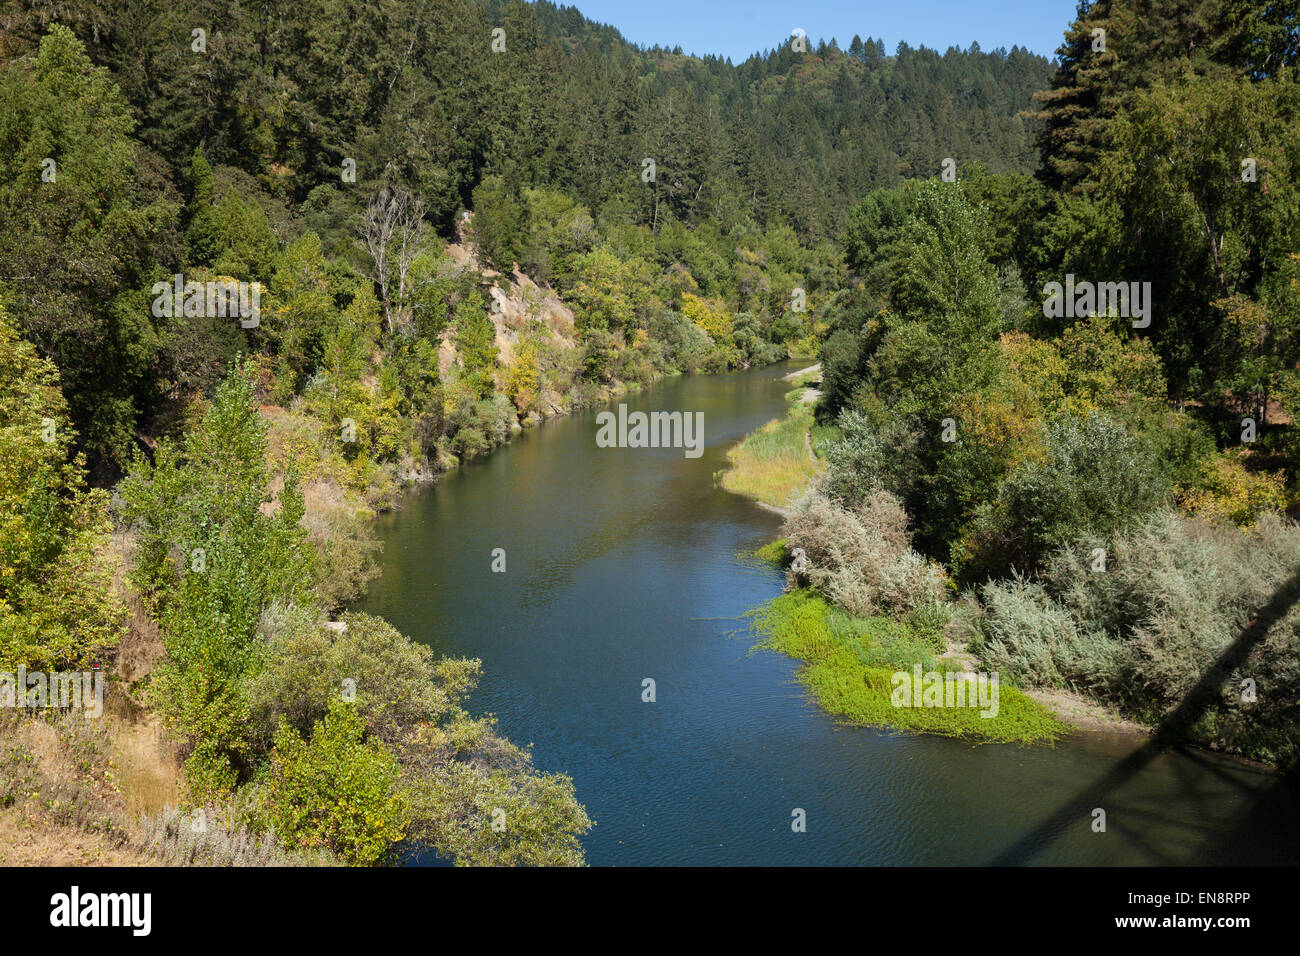 The Russian River seen from a bridge near Guernville in Northern California. - Stock Image